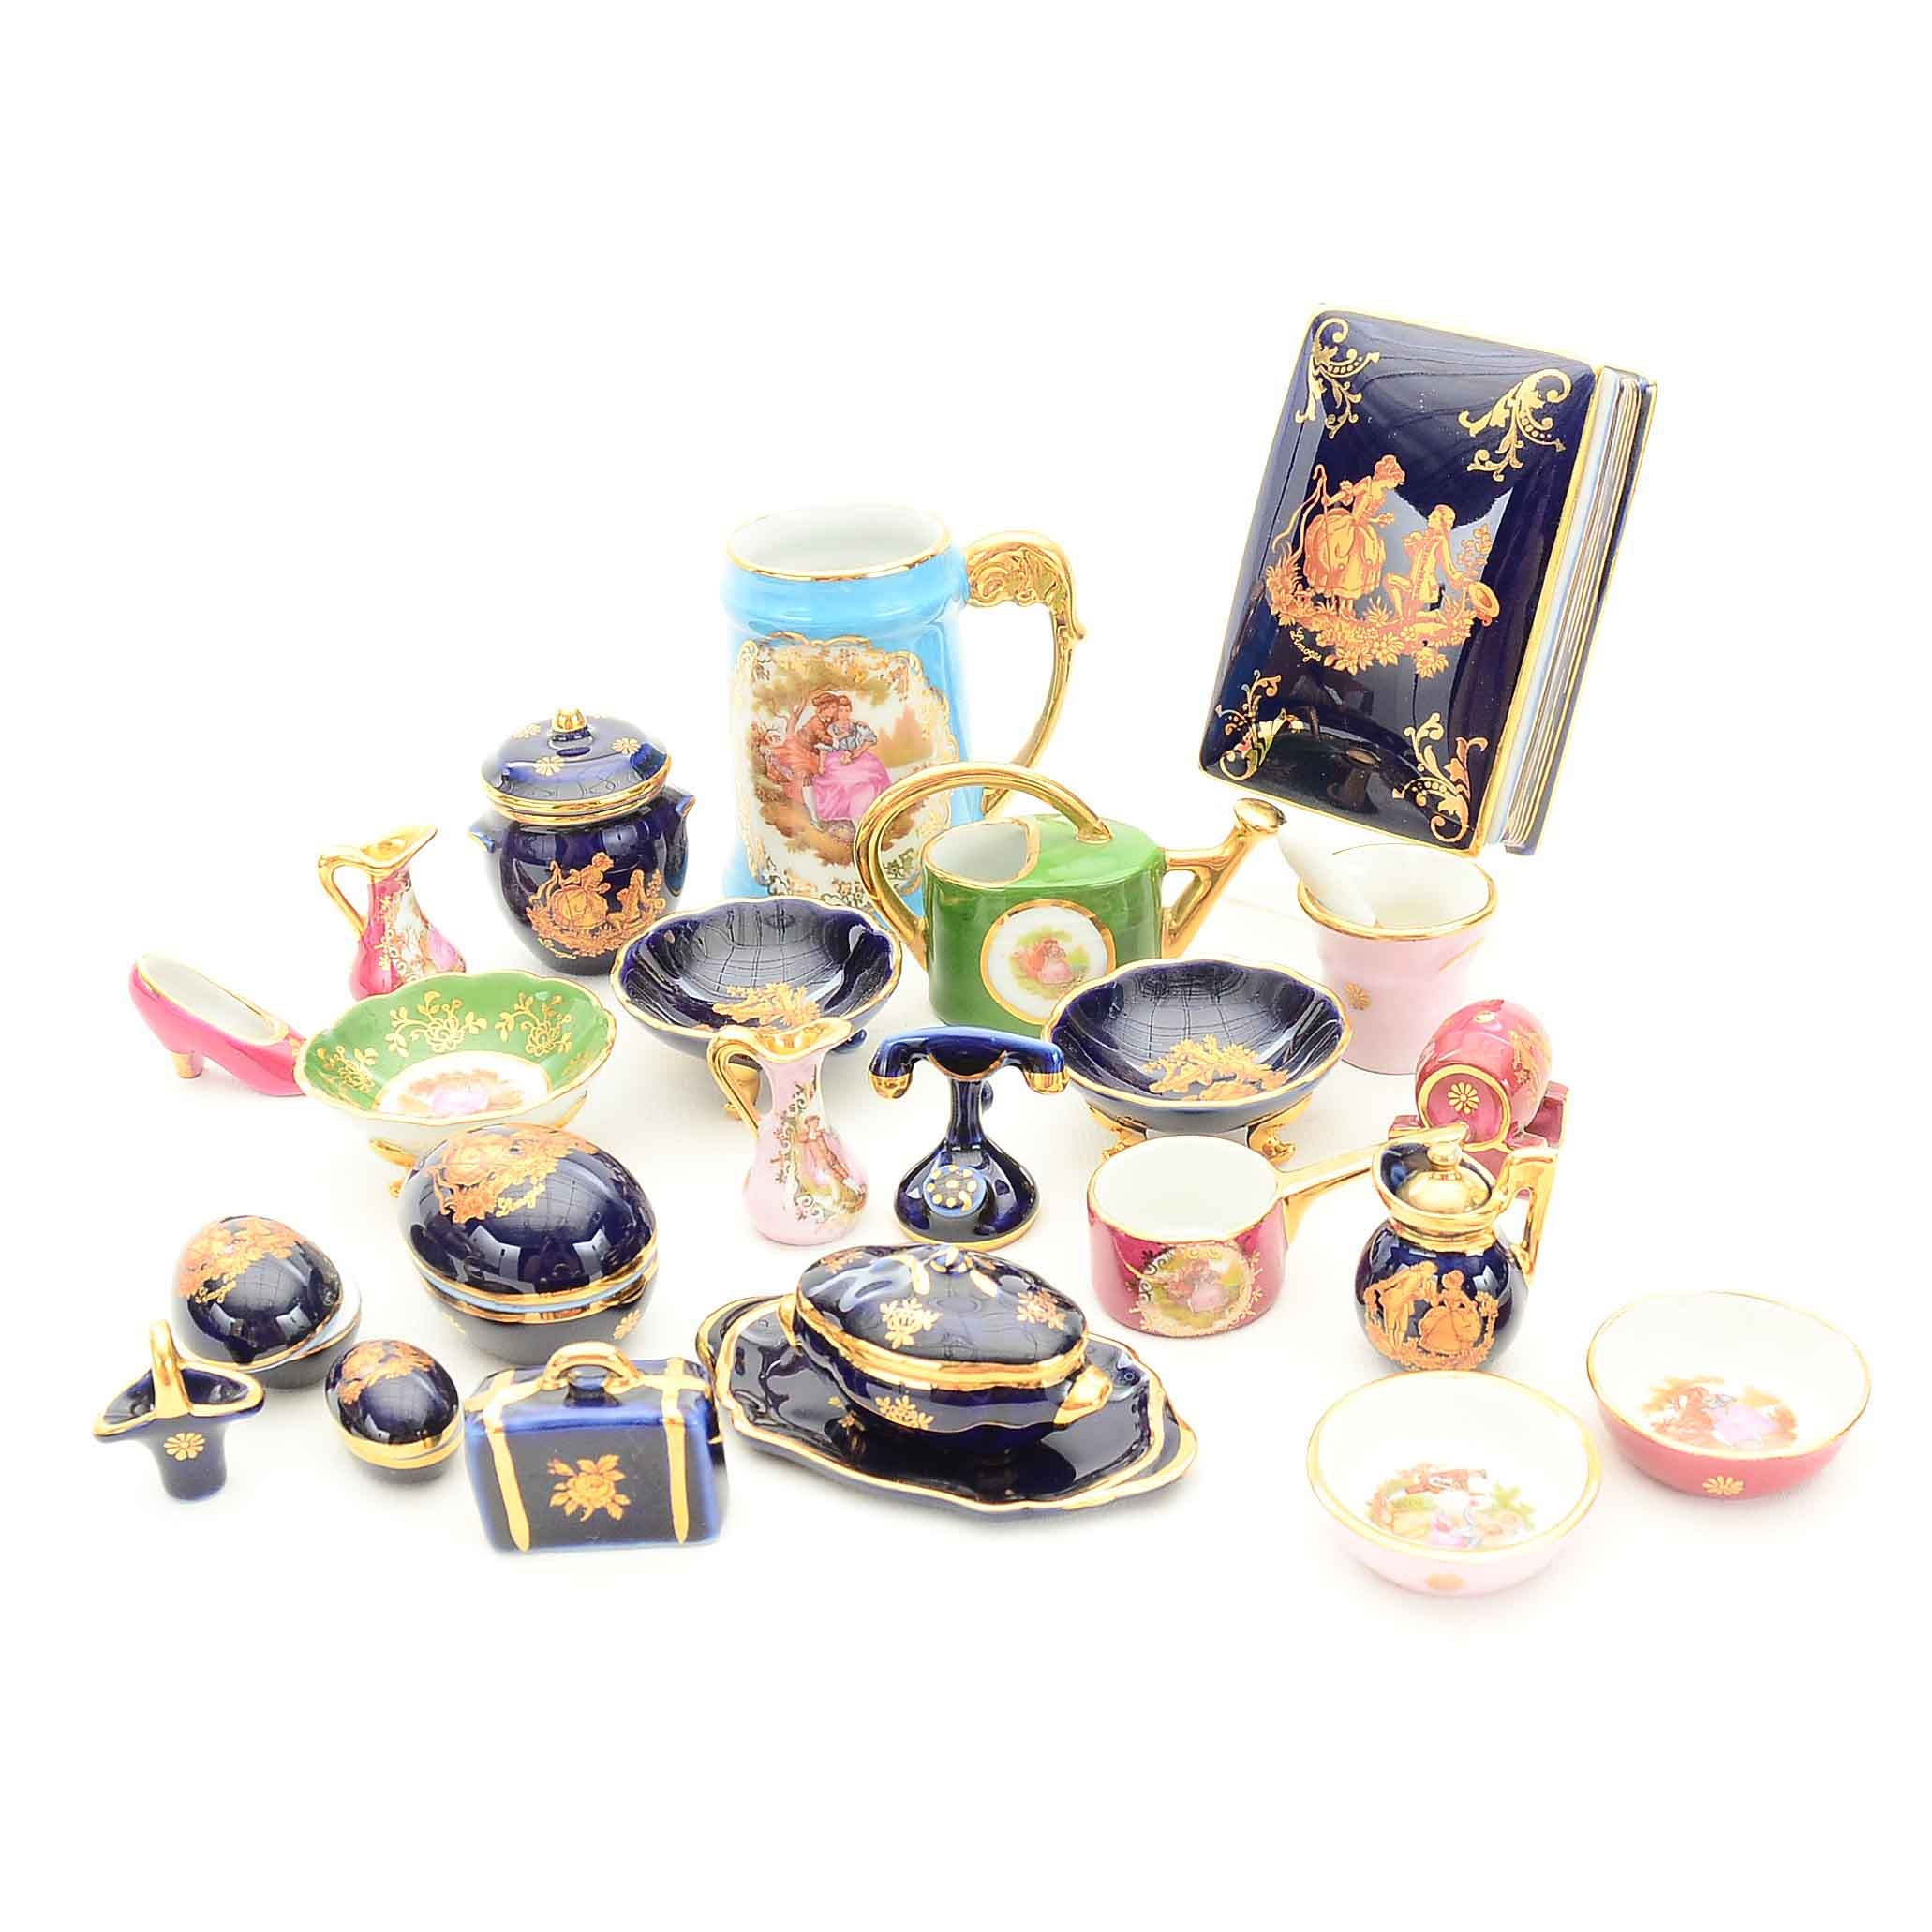 Porcelain Pitchers, Bowls and Eggs Featuring Limoges Miniatures